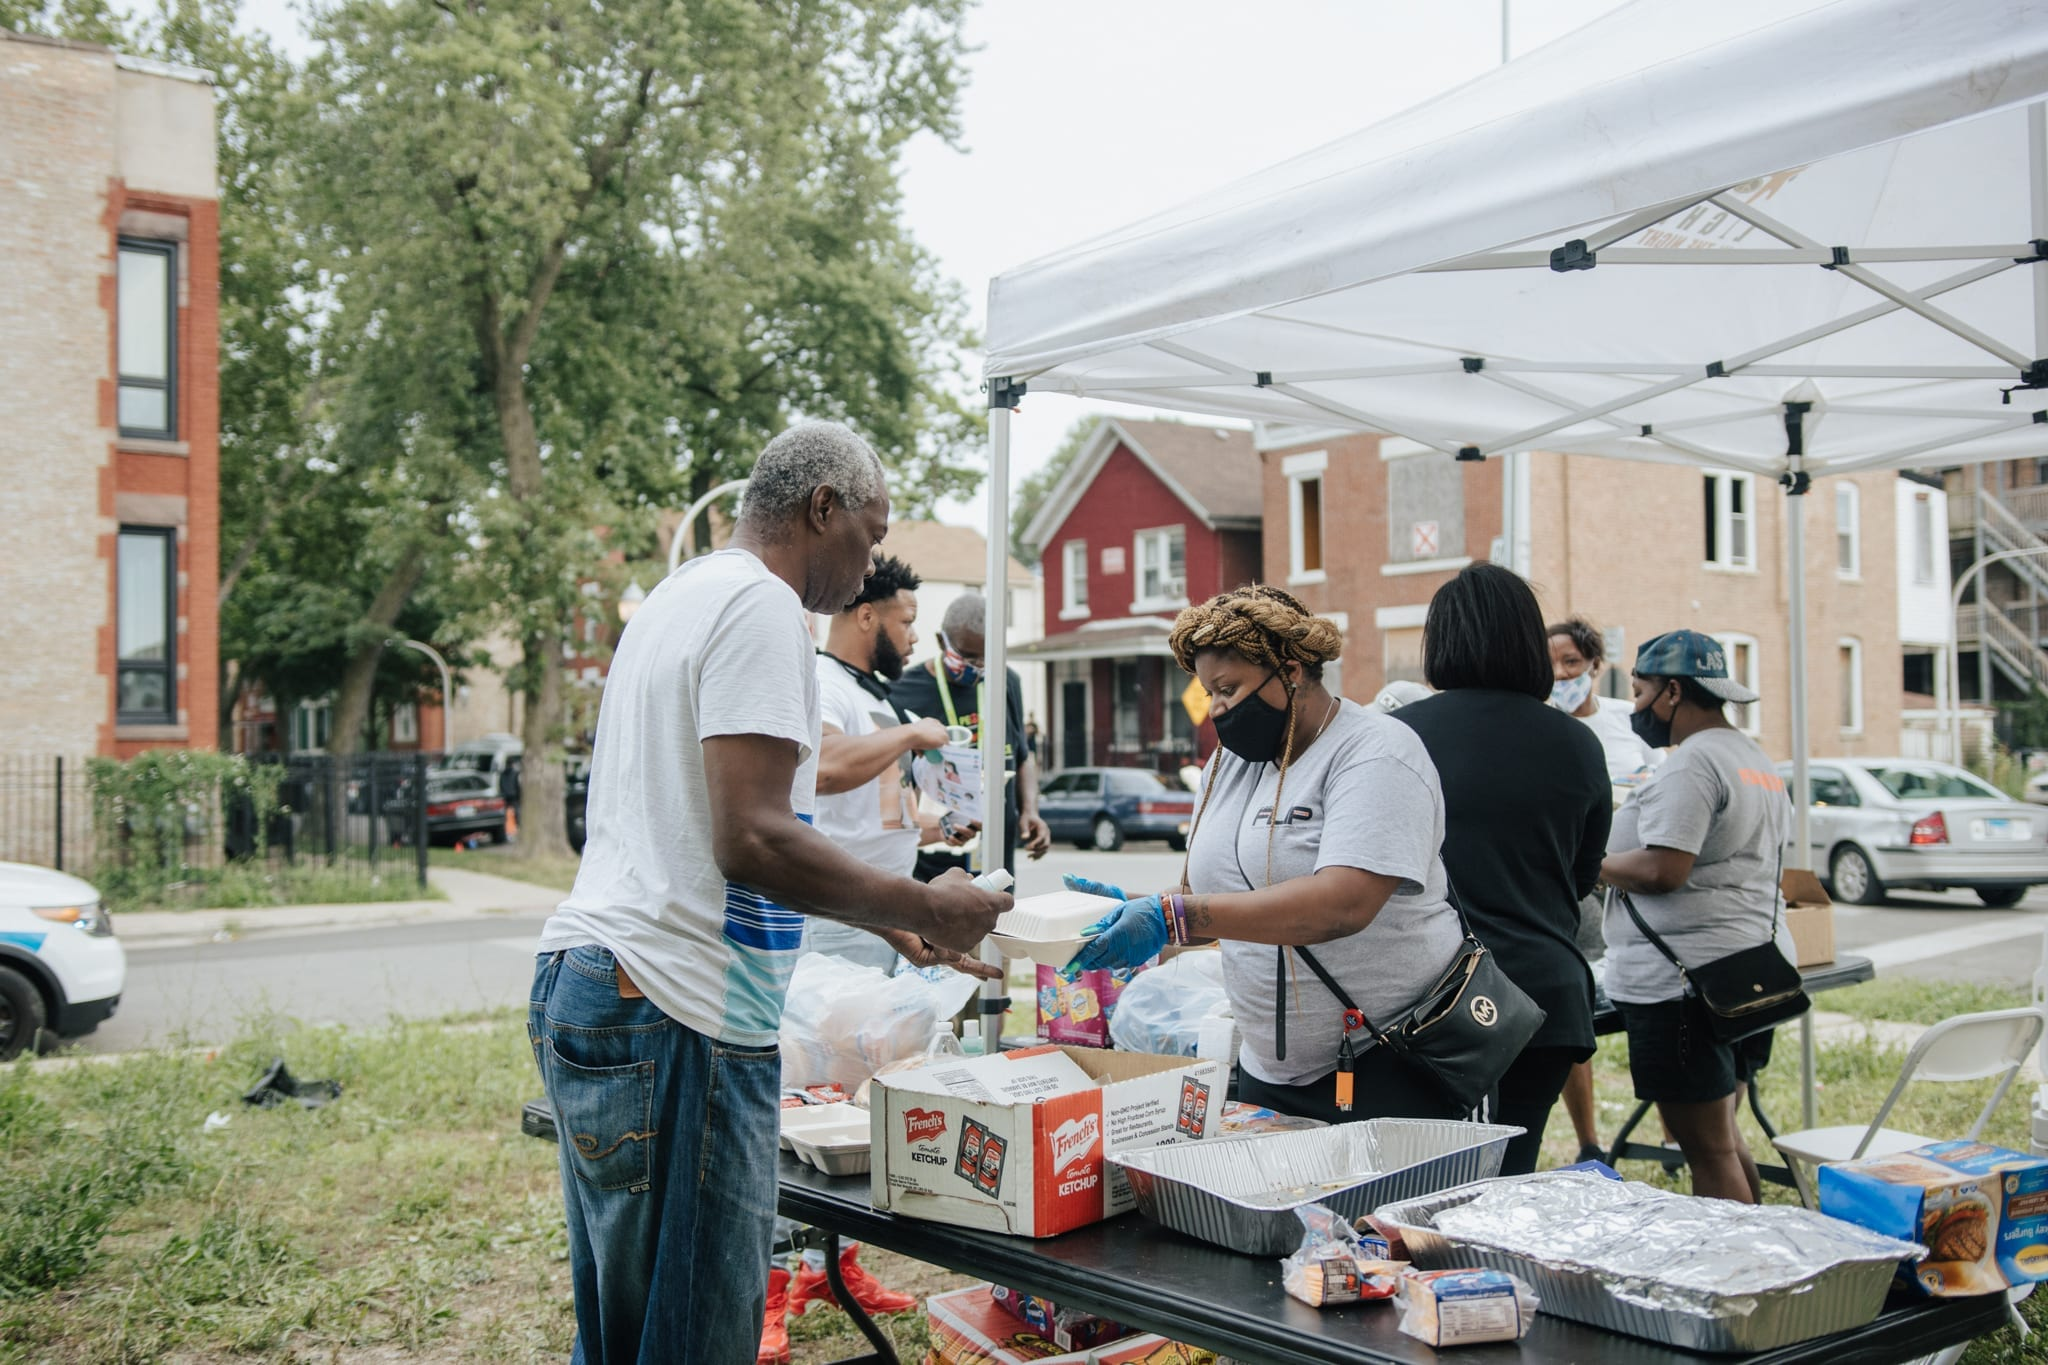 Violence prevention team organizes block party with neigbors in East Garfield Park